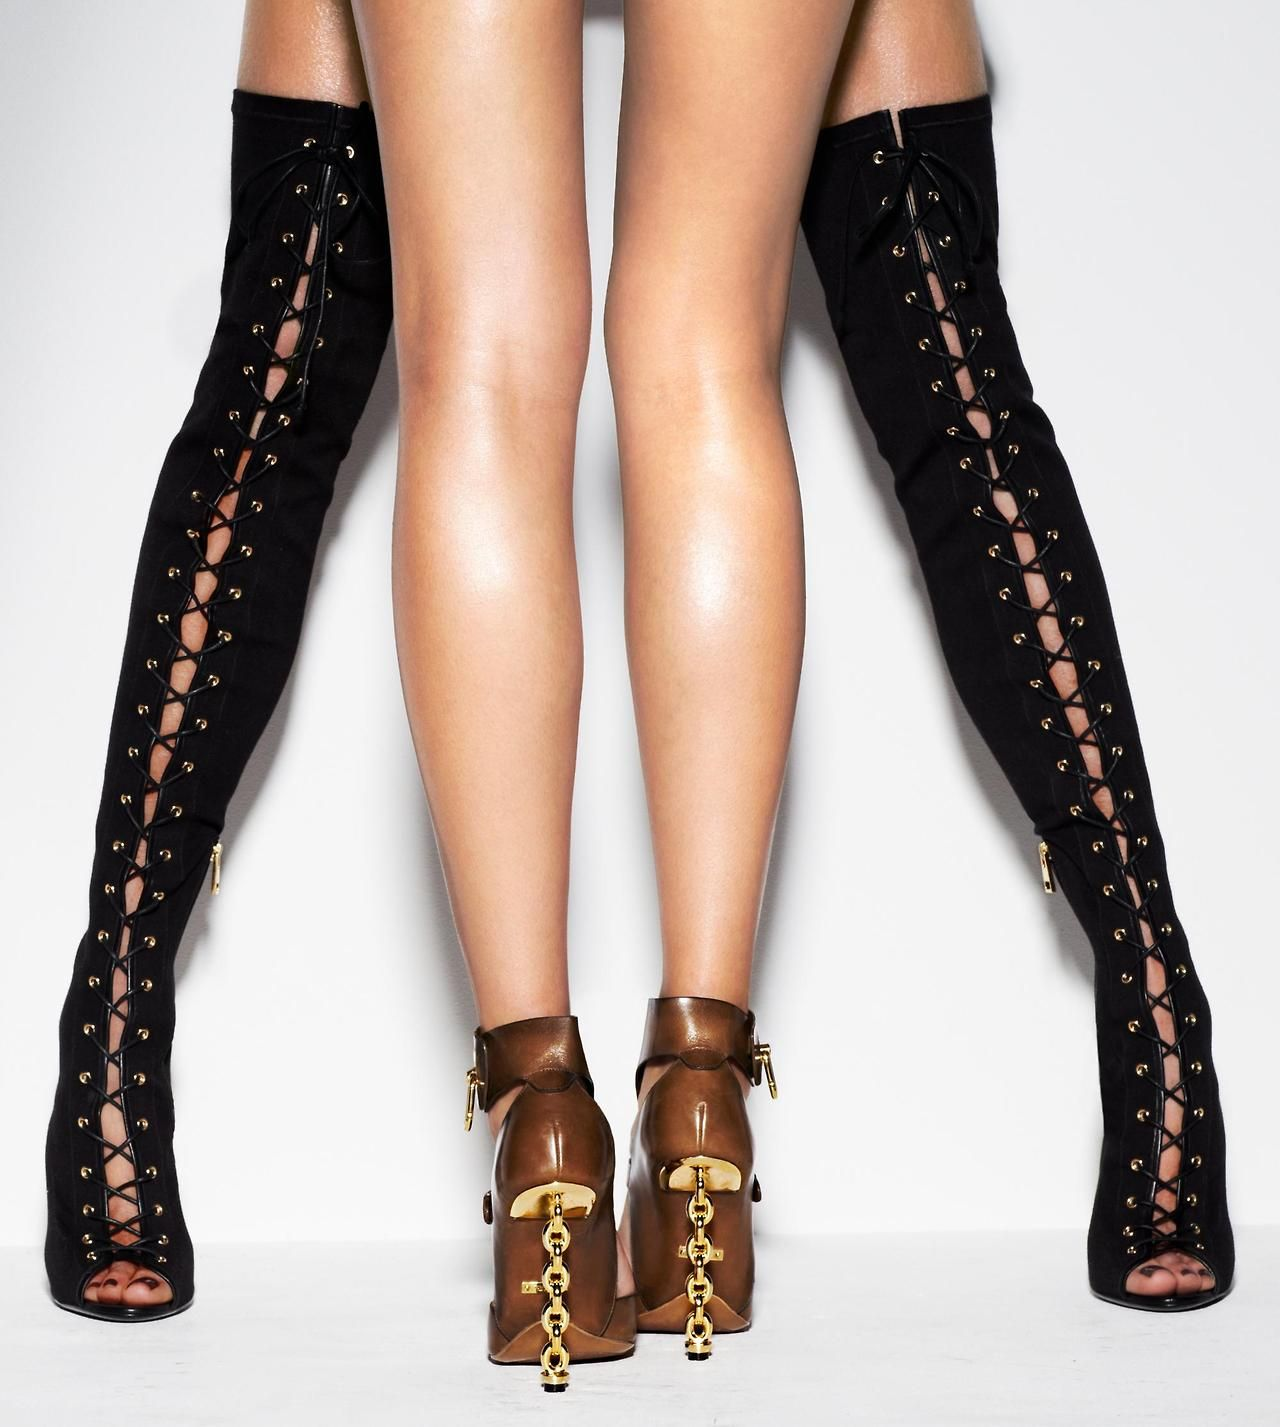 290b891692 Tom Ford Black Lace-Up Thigh High Boots & Brown Leather Gladiator Sandals  with Chain Heels Spring 2014 #Shoes #Heels